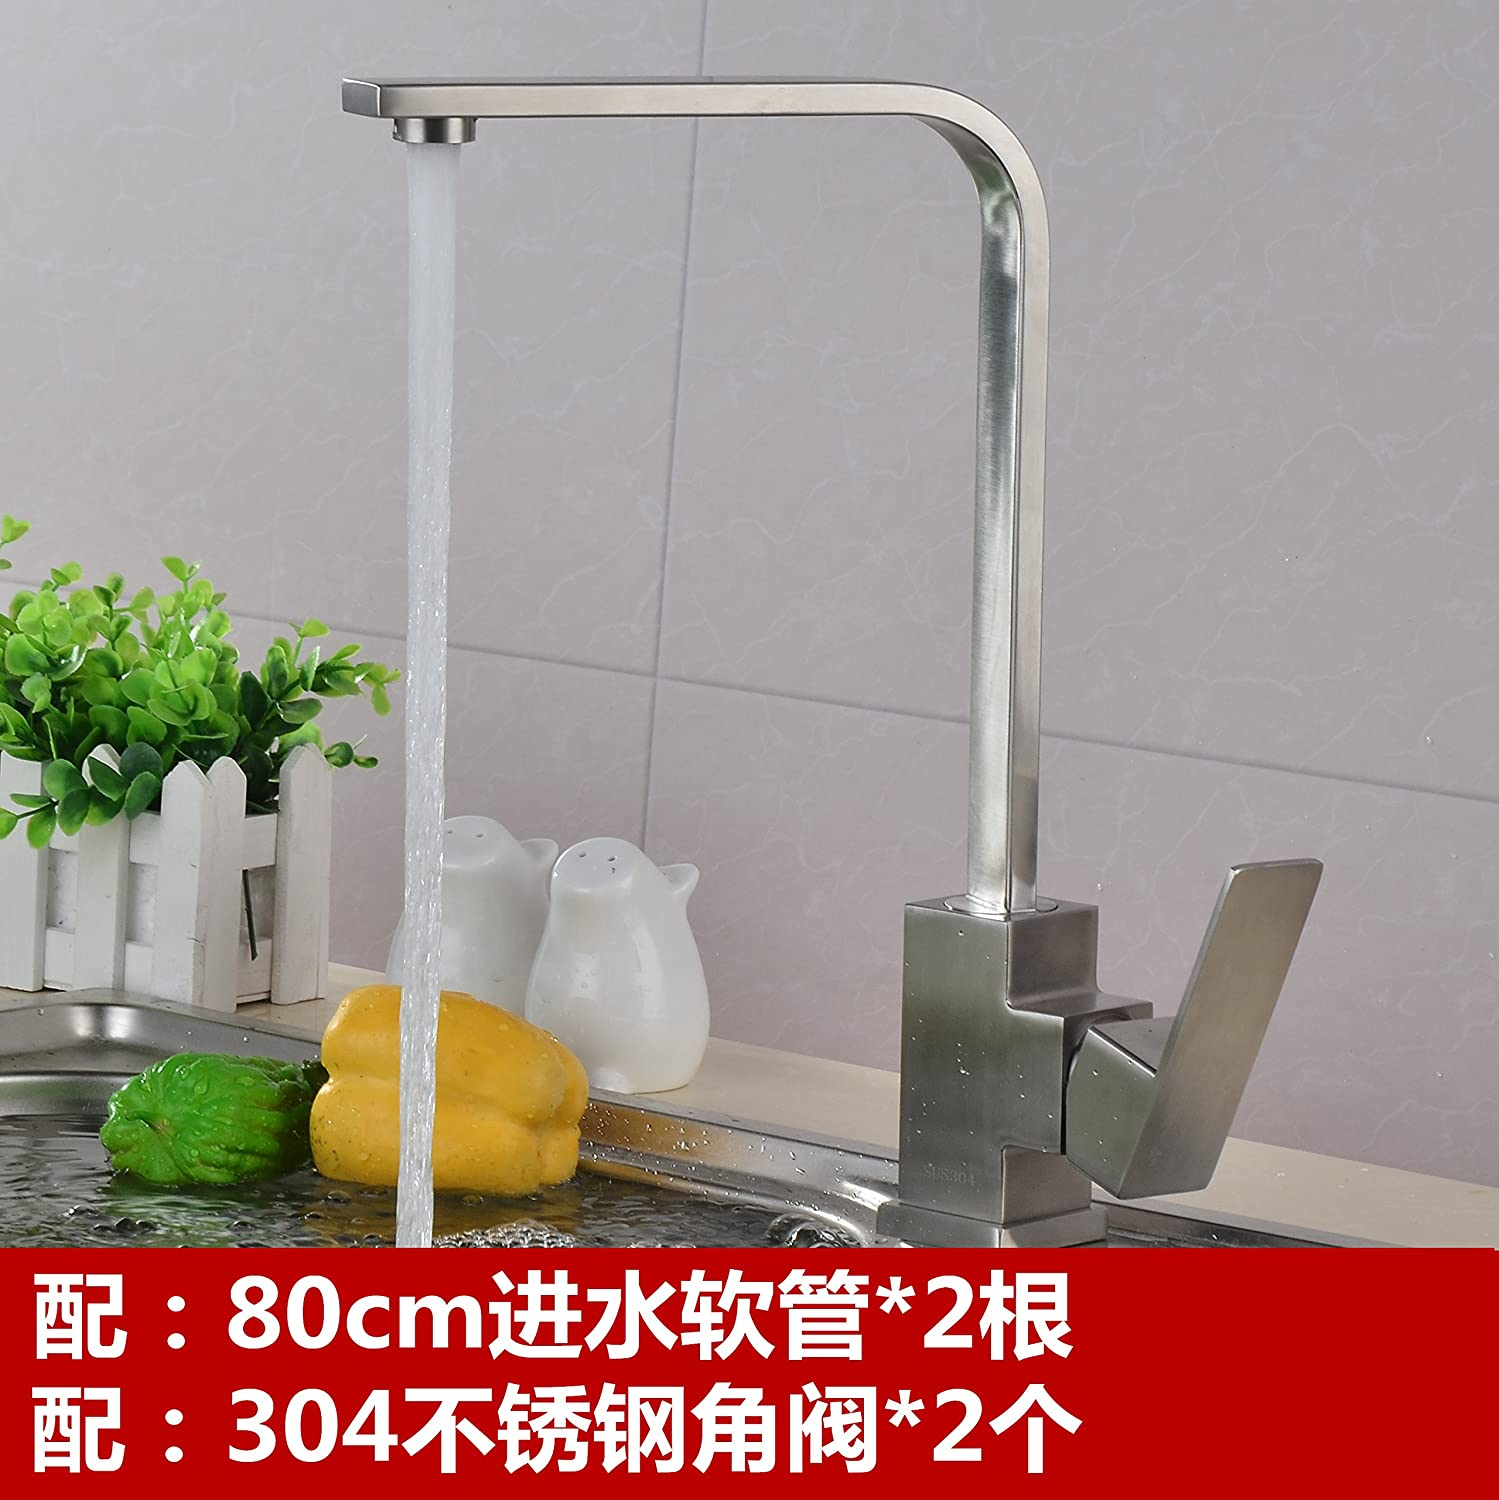 Hlluya 304 Stainless Steel kitchen faucet dish washing basin redating kitchen faucet stainless steel water tank water dragon, square mixer + stainless steel angle valve +80cm Water Inlet Hose